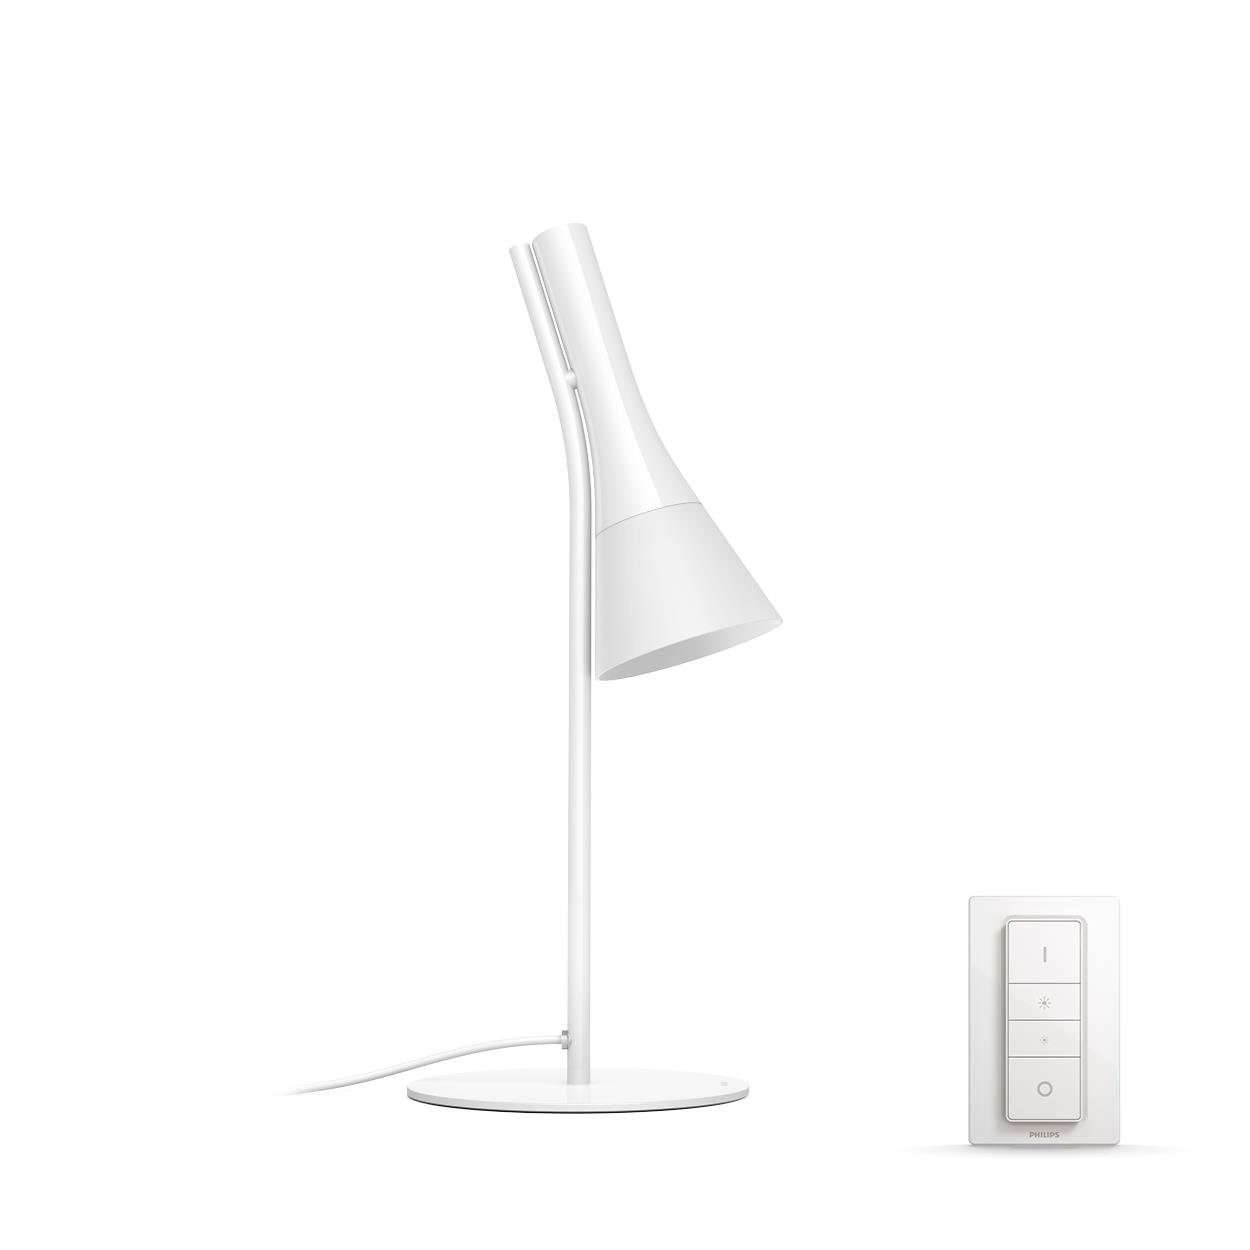 Philips Hue - Explore  Table Lamp White (Dimmer Switch Included) - White Ambiance - E